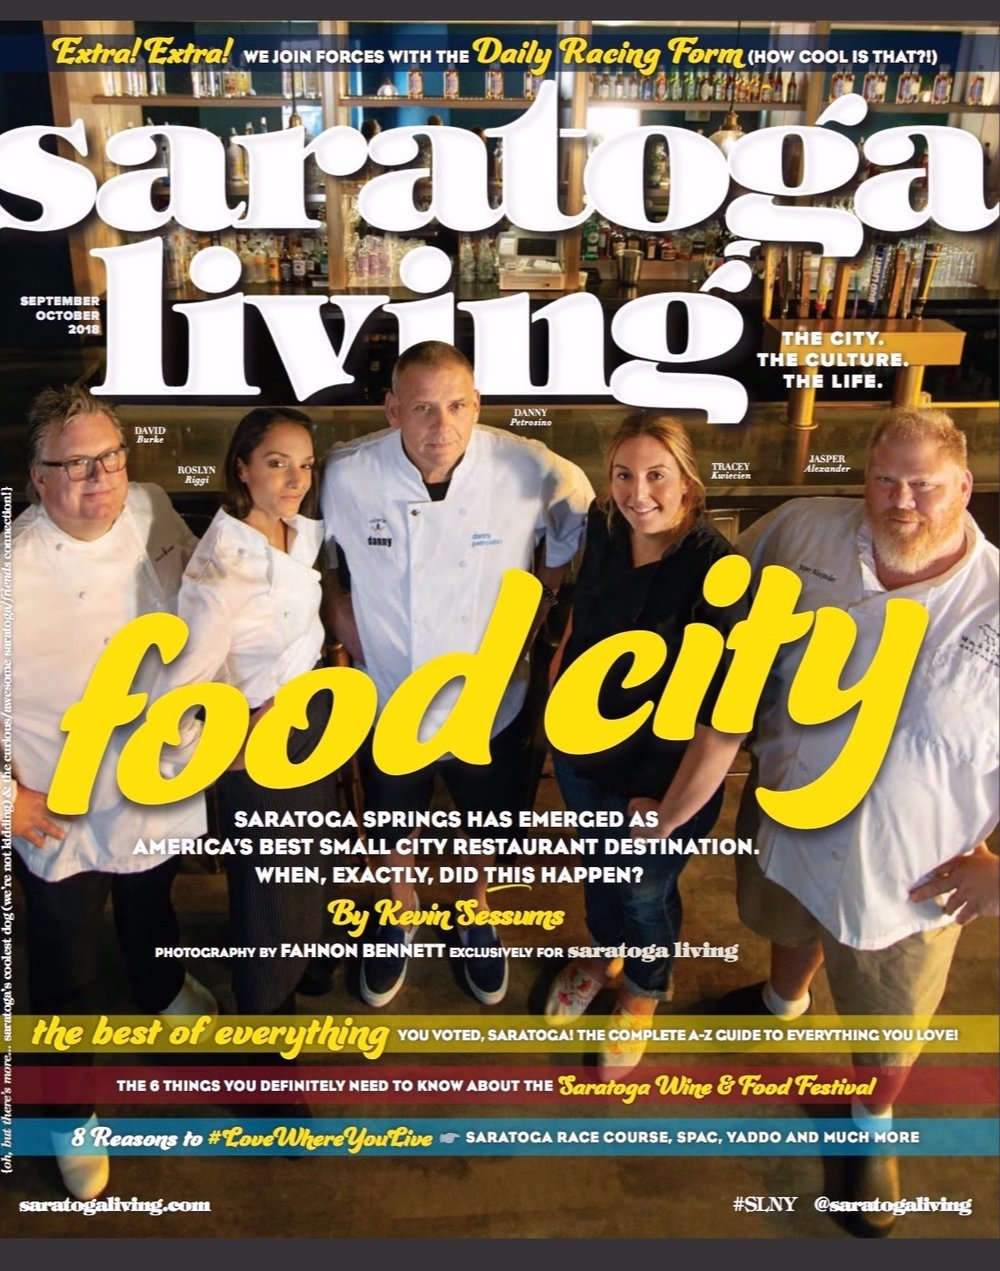 Saratoga Living crafts a masterful feature article on how Saratoga Springs suddenly emerged as America's best small city restaurant destination.